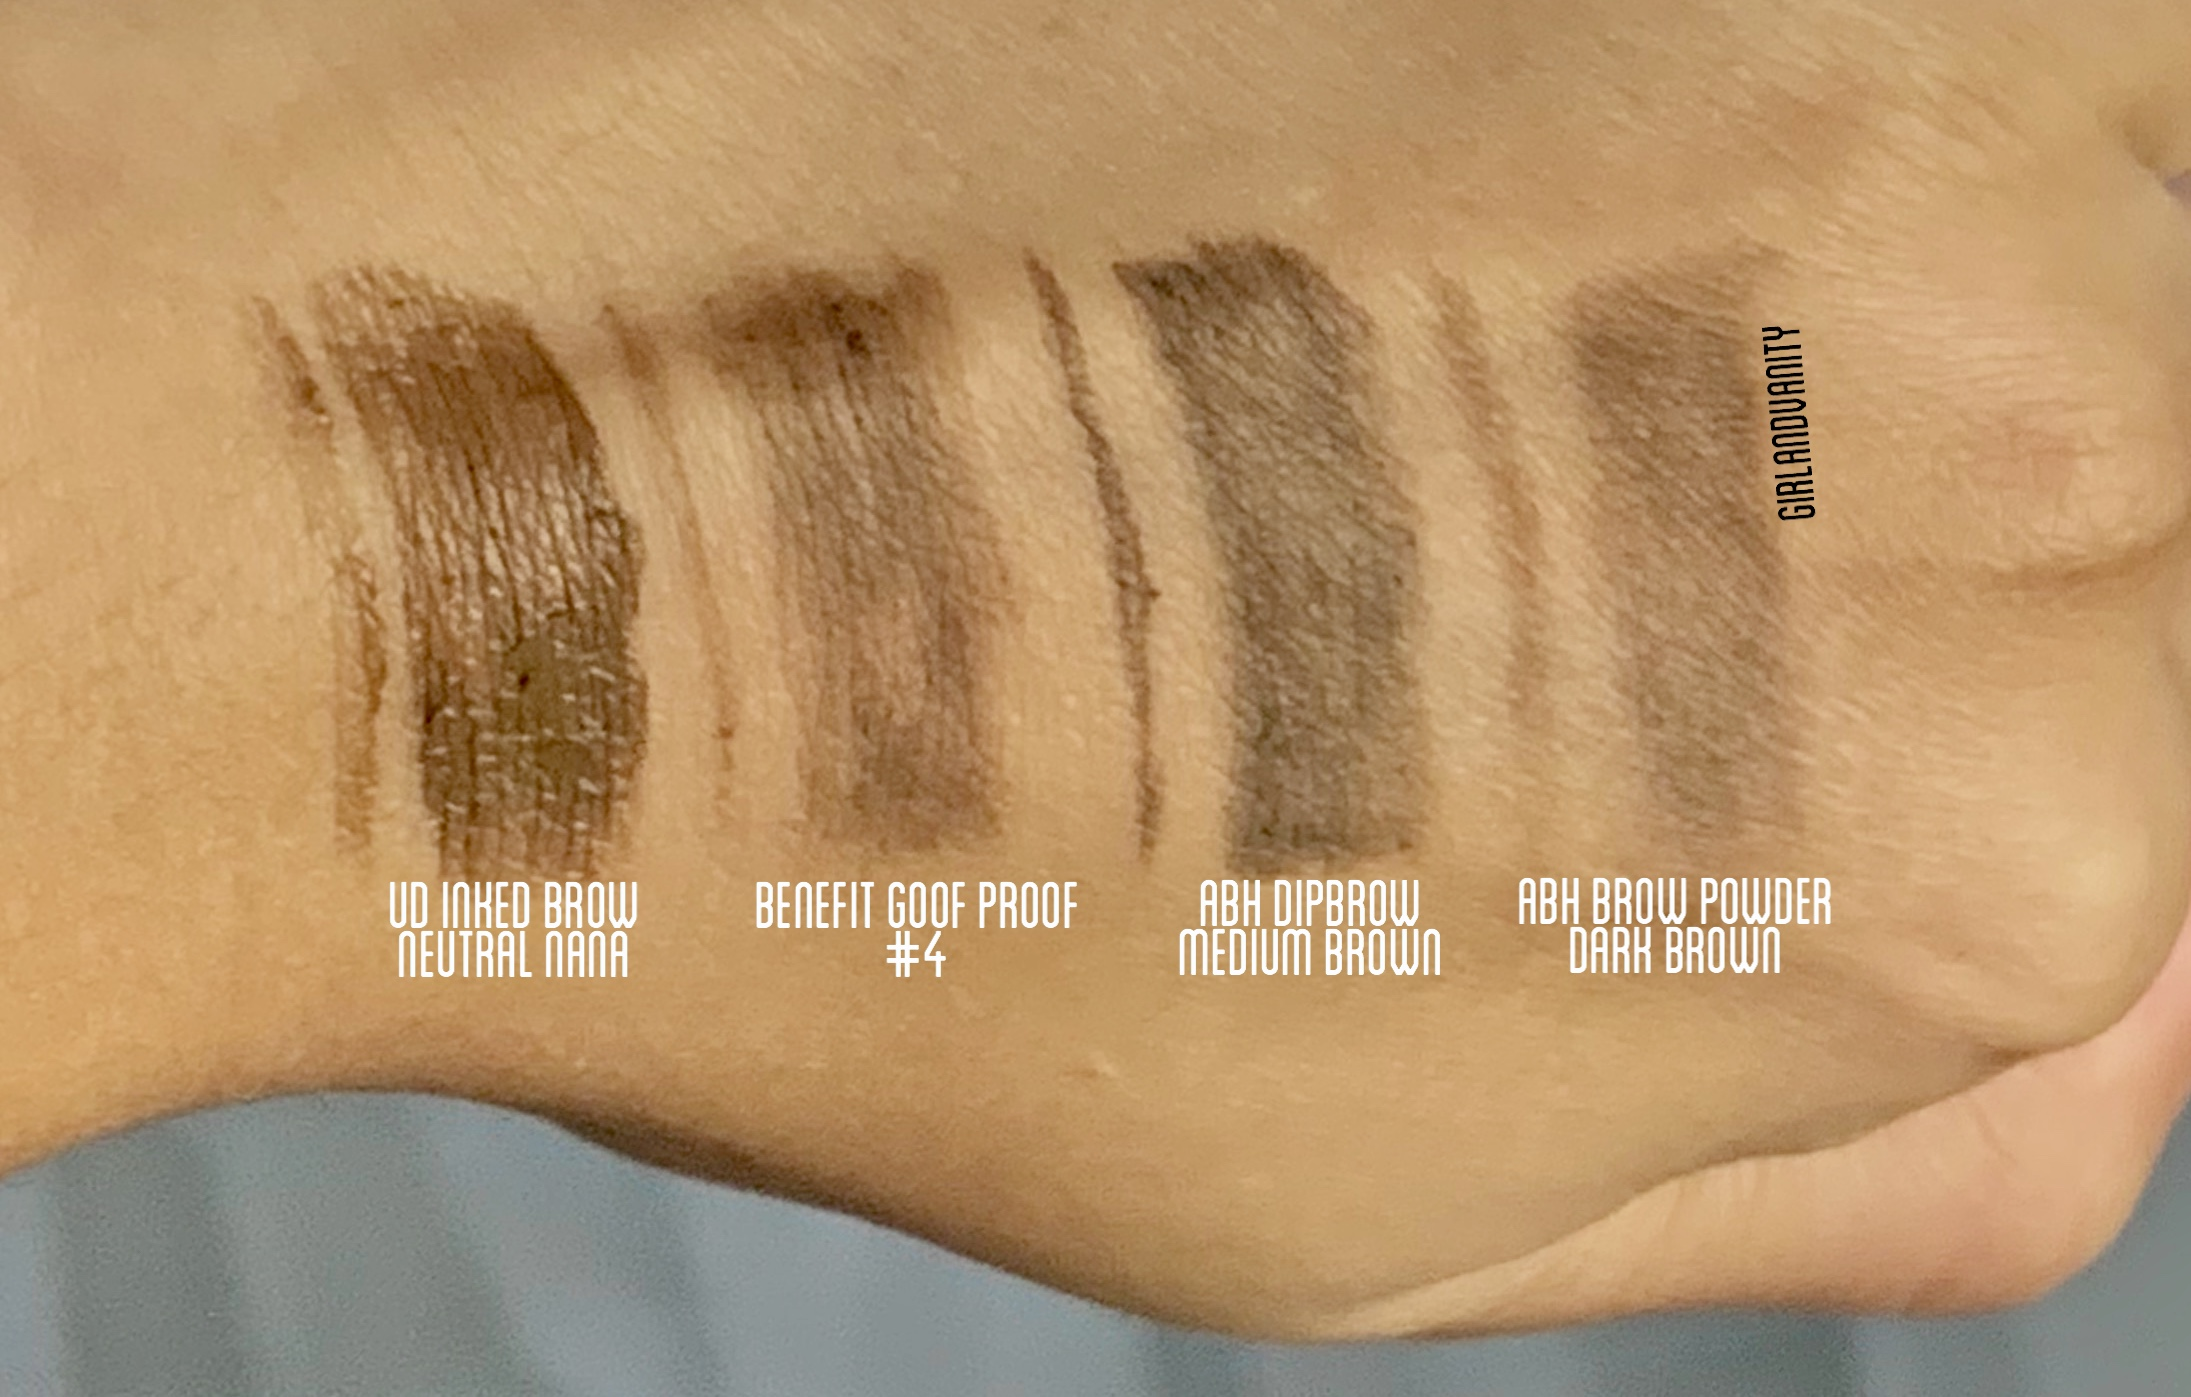 urban decay inked brow neutral nana vs benefit goof proof brow #4 vs anastasia beverly hills dipbrow medium brow vs anastasia beverly hills brow powder dark brown swatch